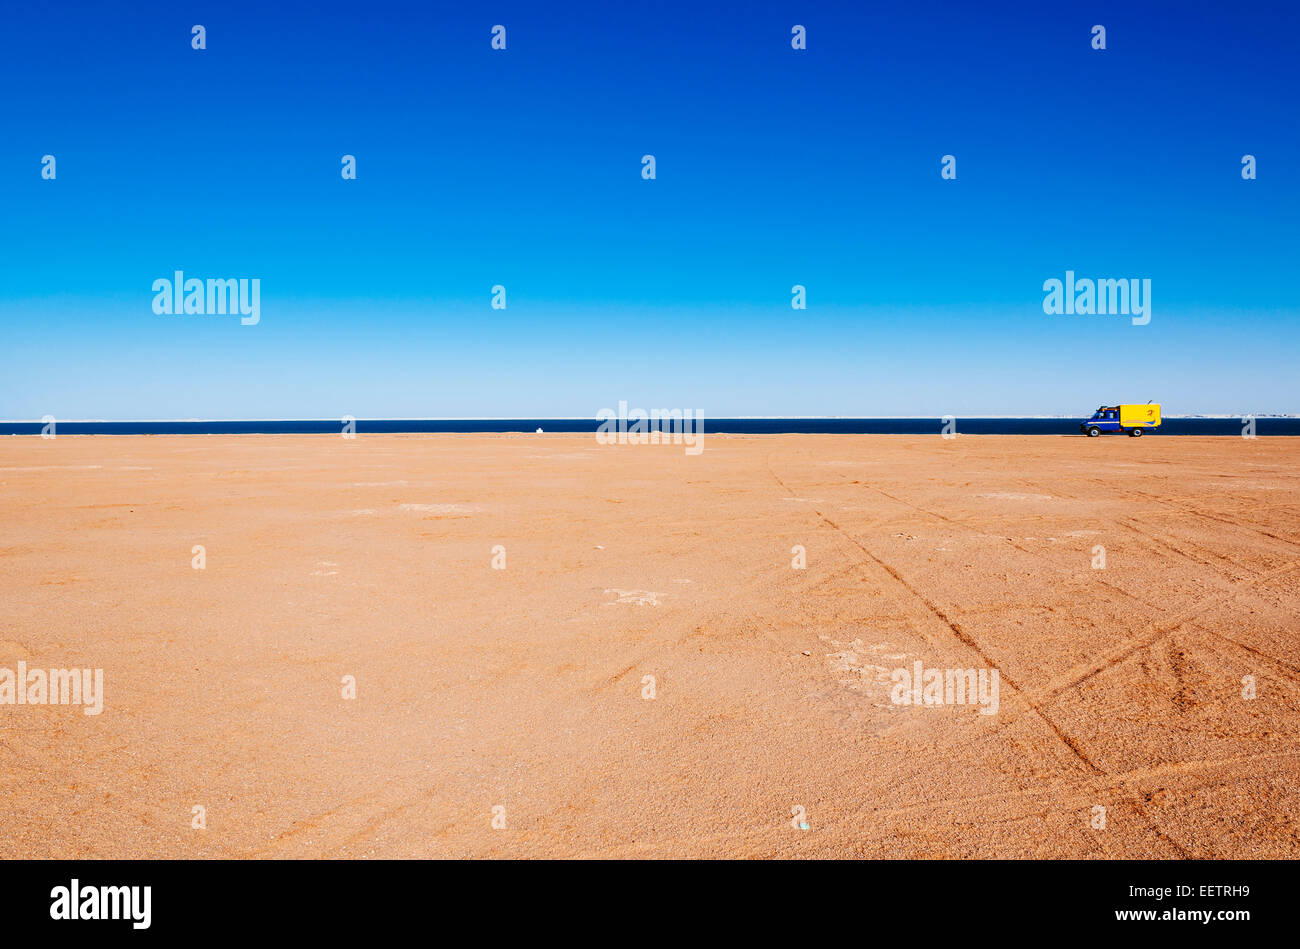 4x4 expedition truck parked by the coast, Dakhla, Western Sahara, Morocco - Stock Image